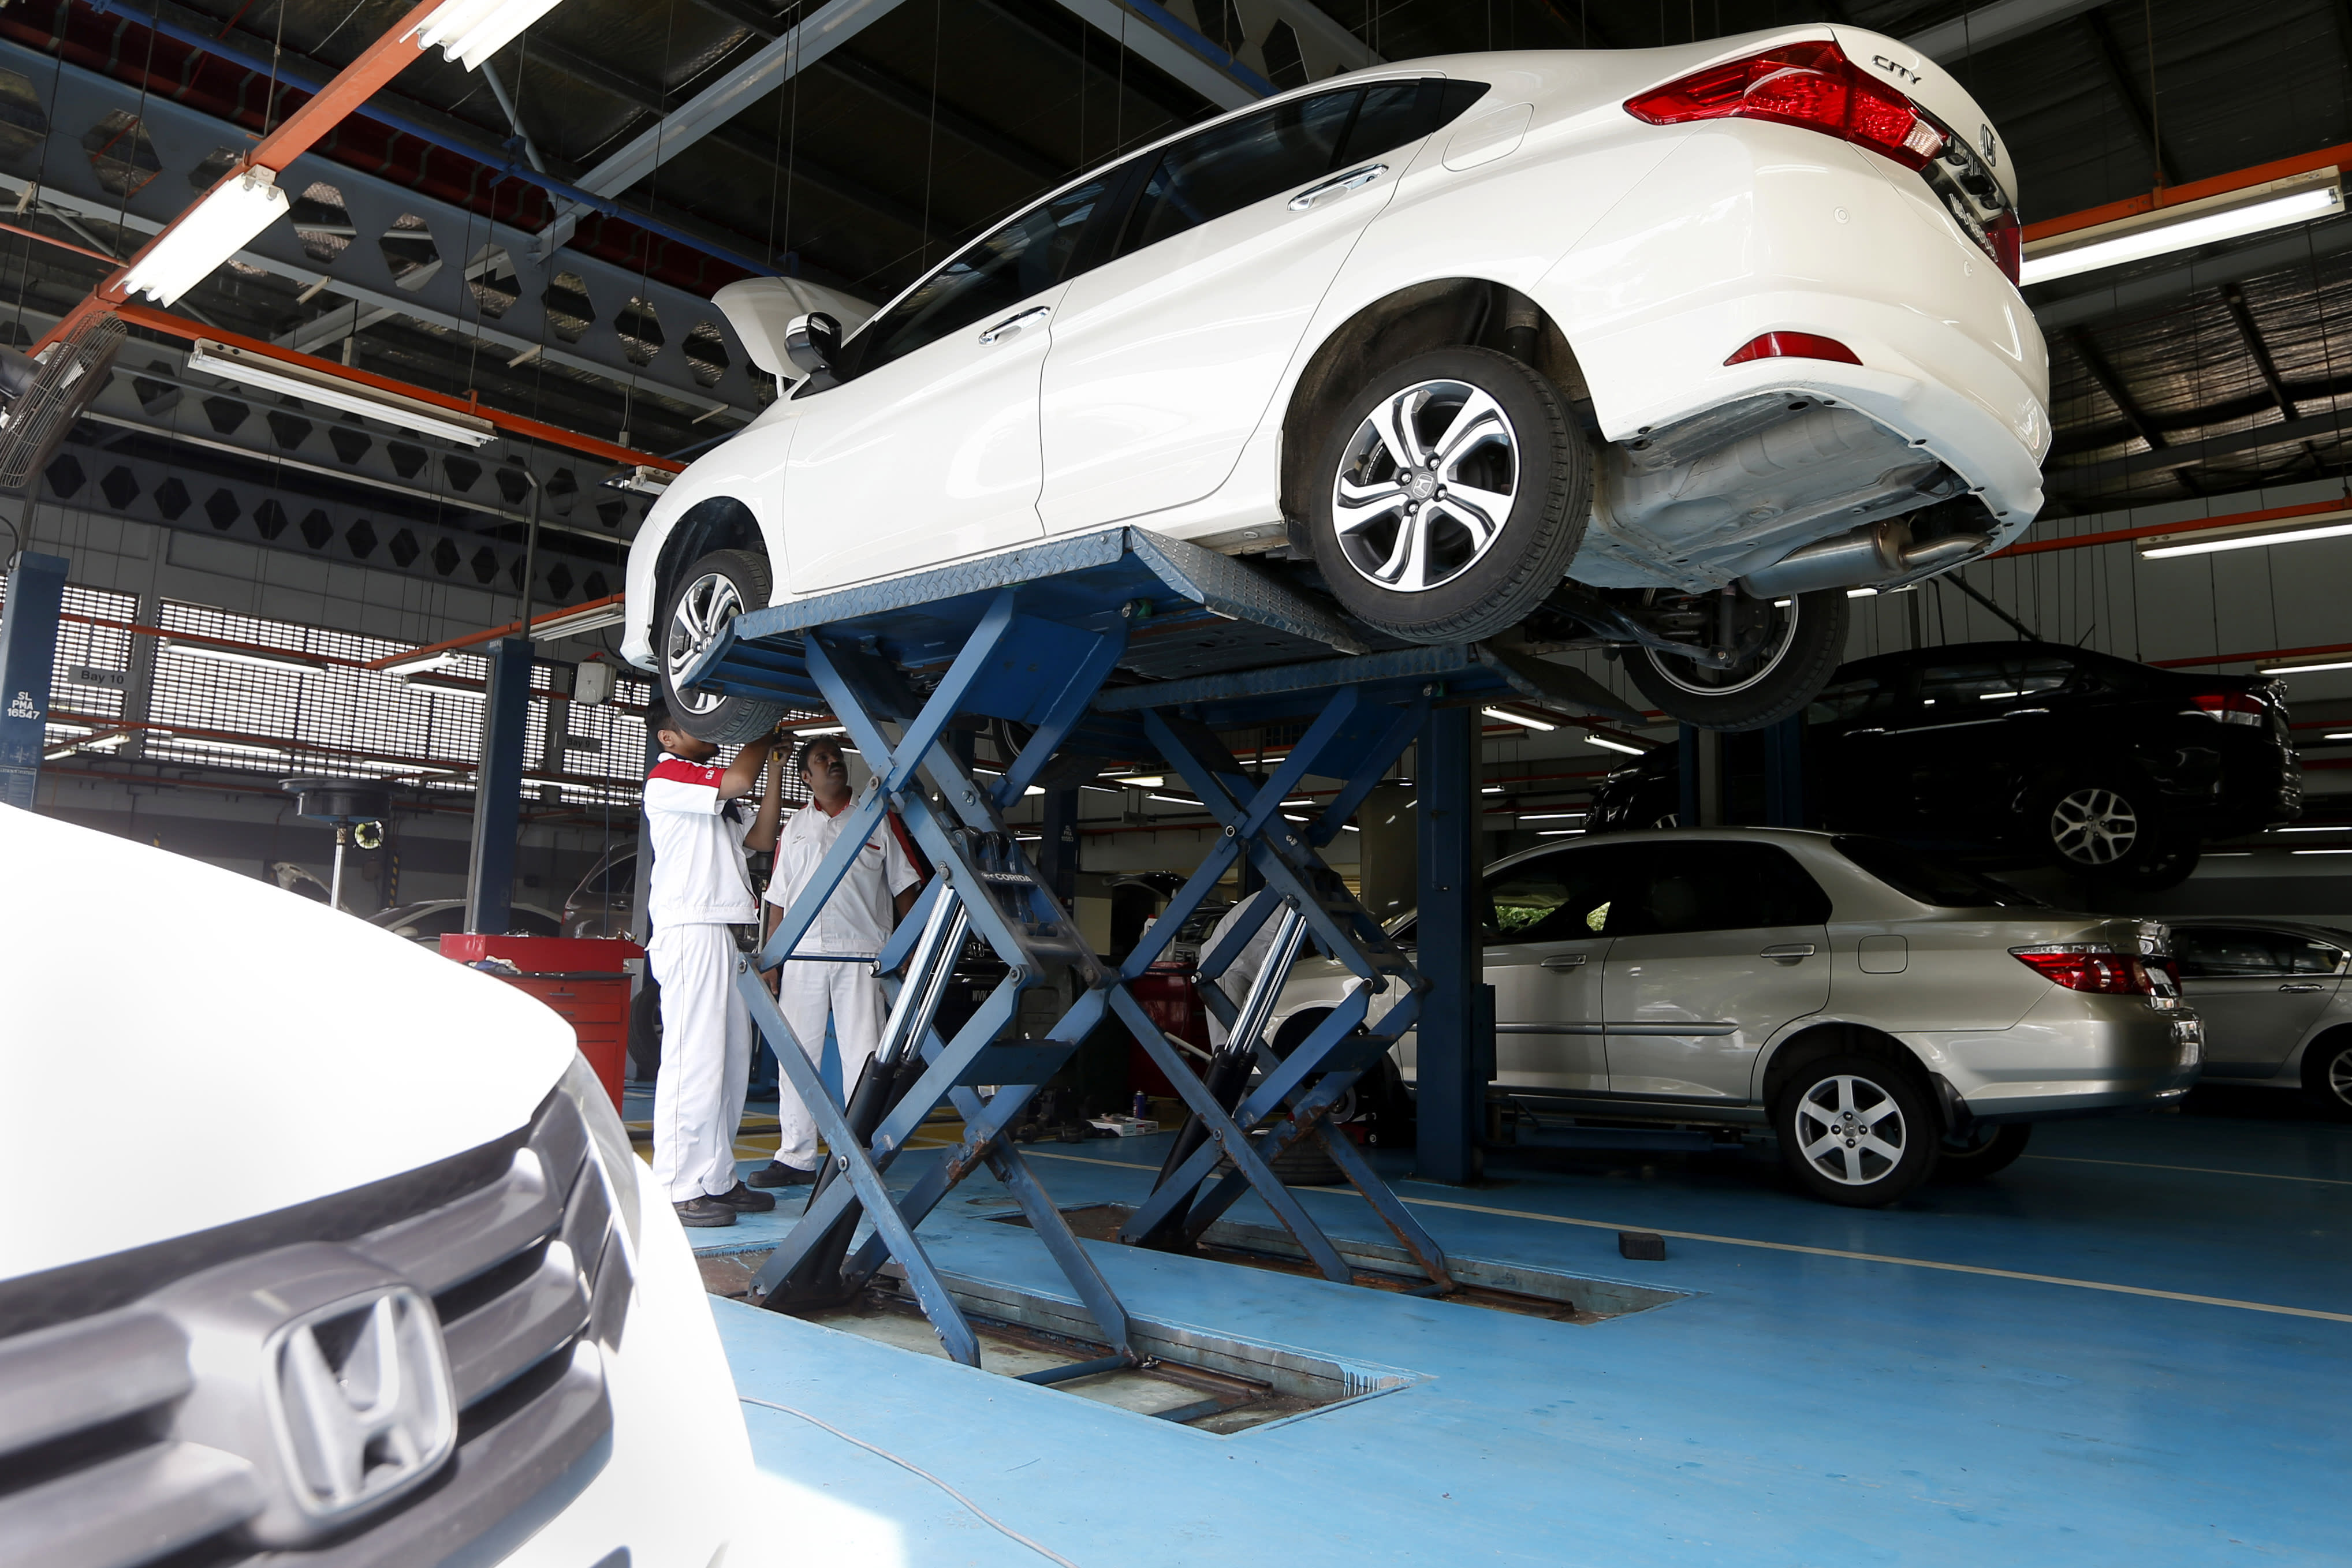 Auto industry acts globally _ except on recalls